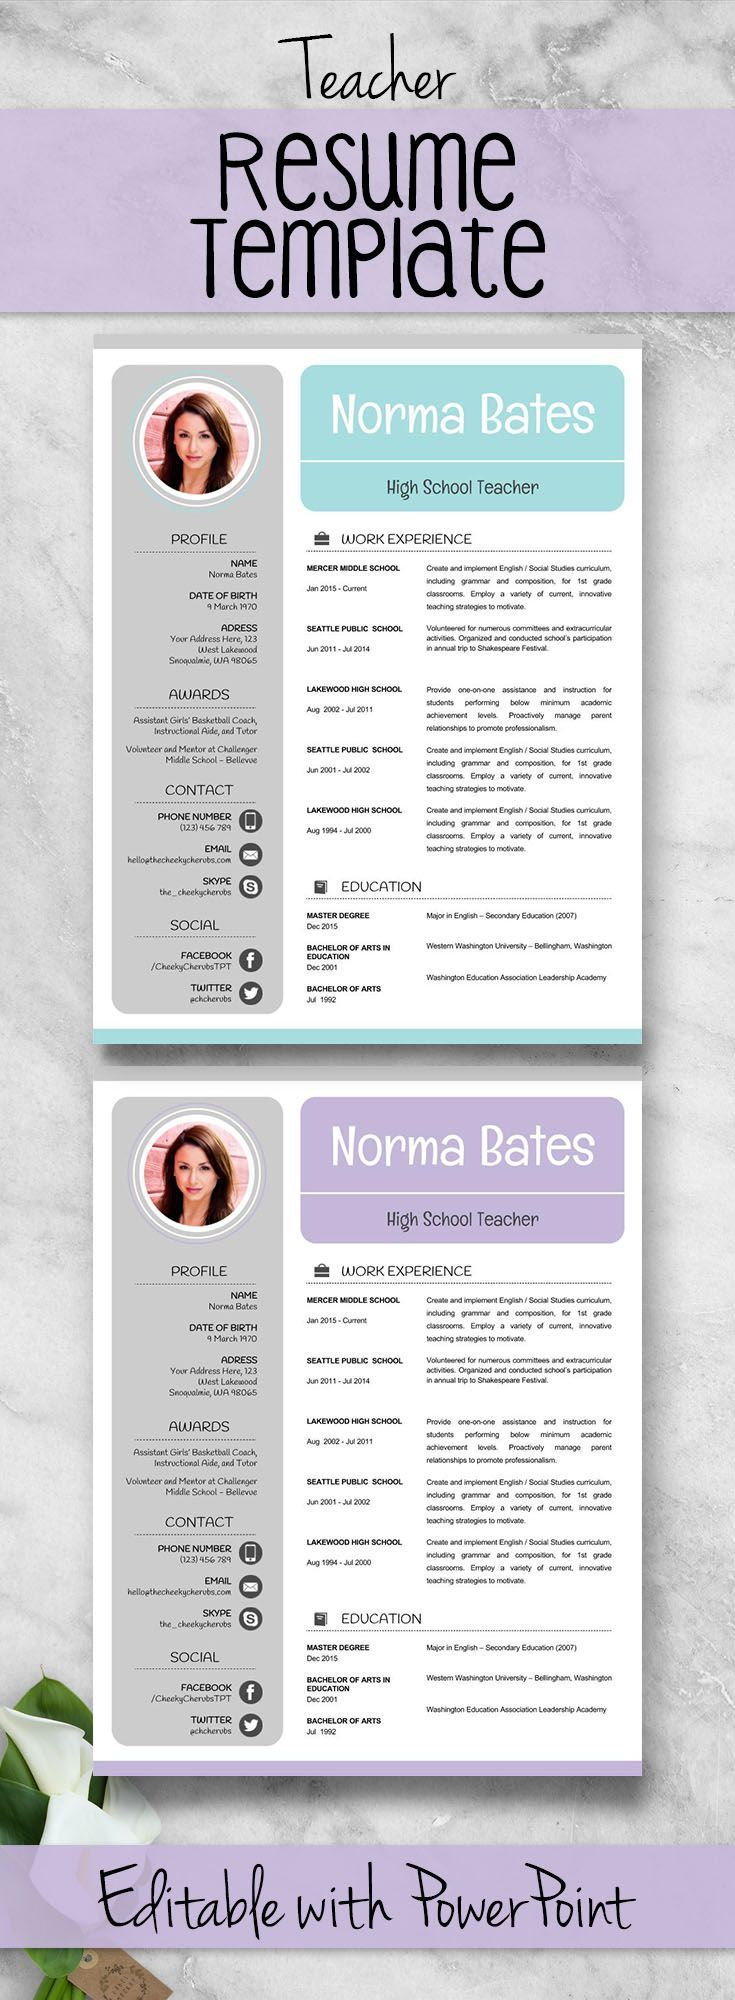 neat teacher resume template   cover letter   references powerpoint editable